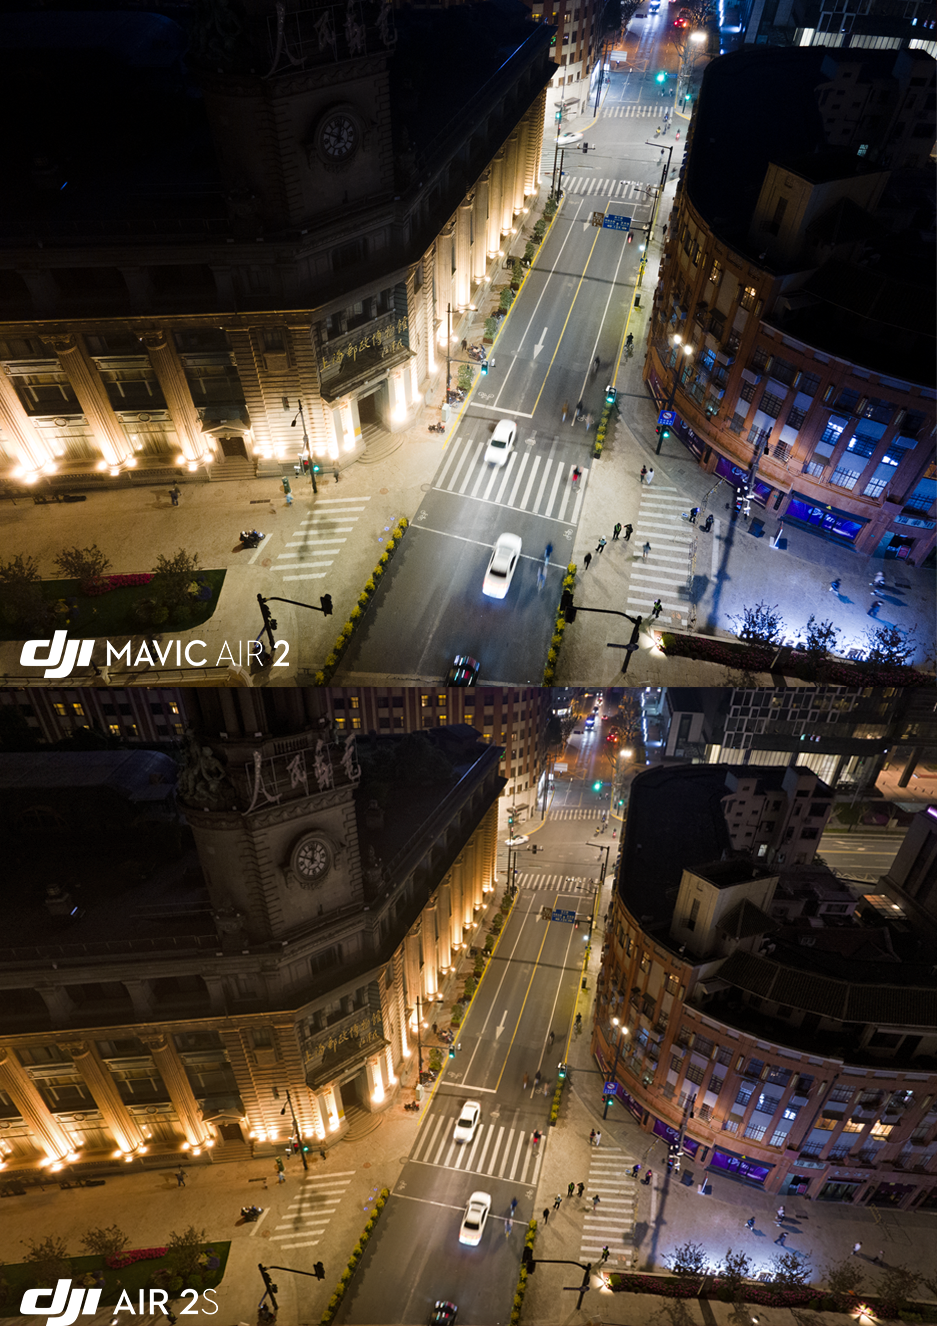 The DJI Air 2S is able to capture more details in the shadows when compared to the DJI Mavic Air 2